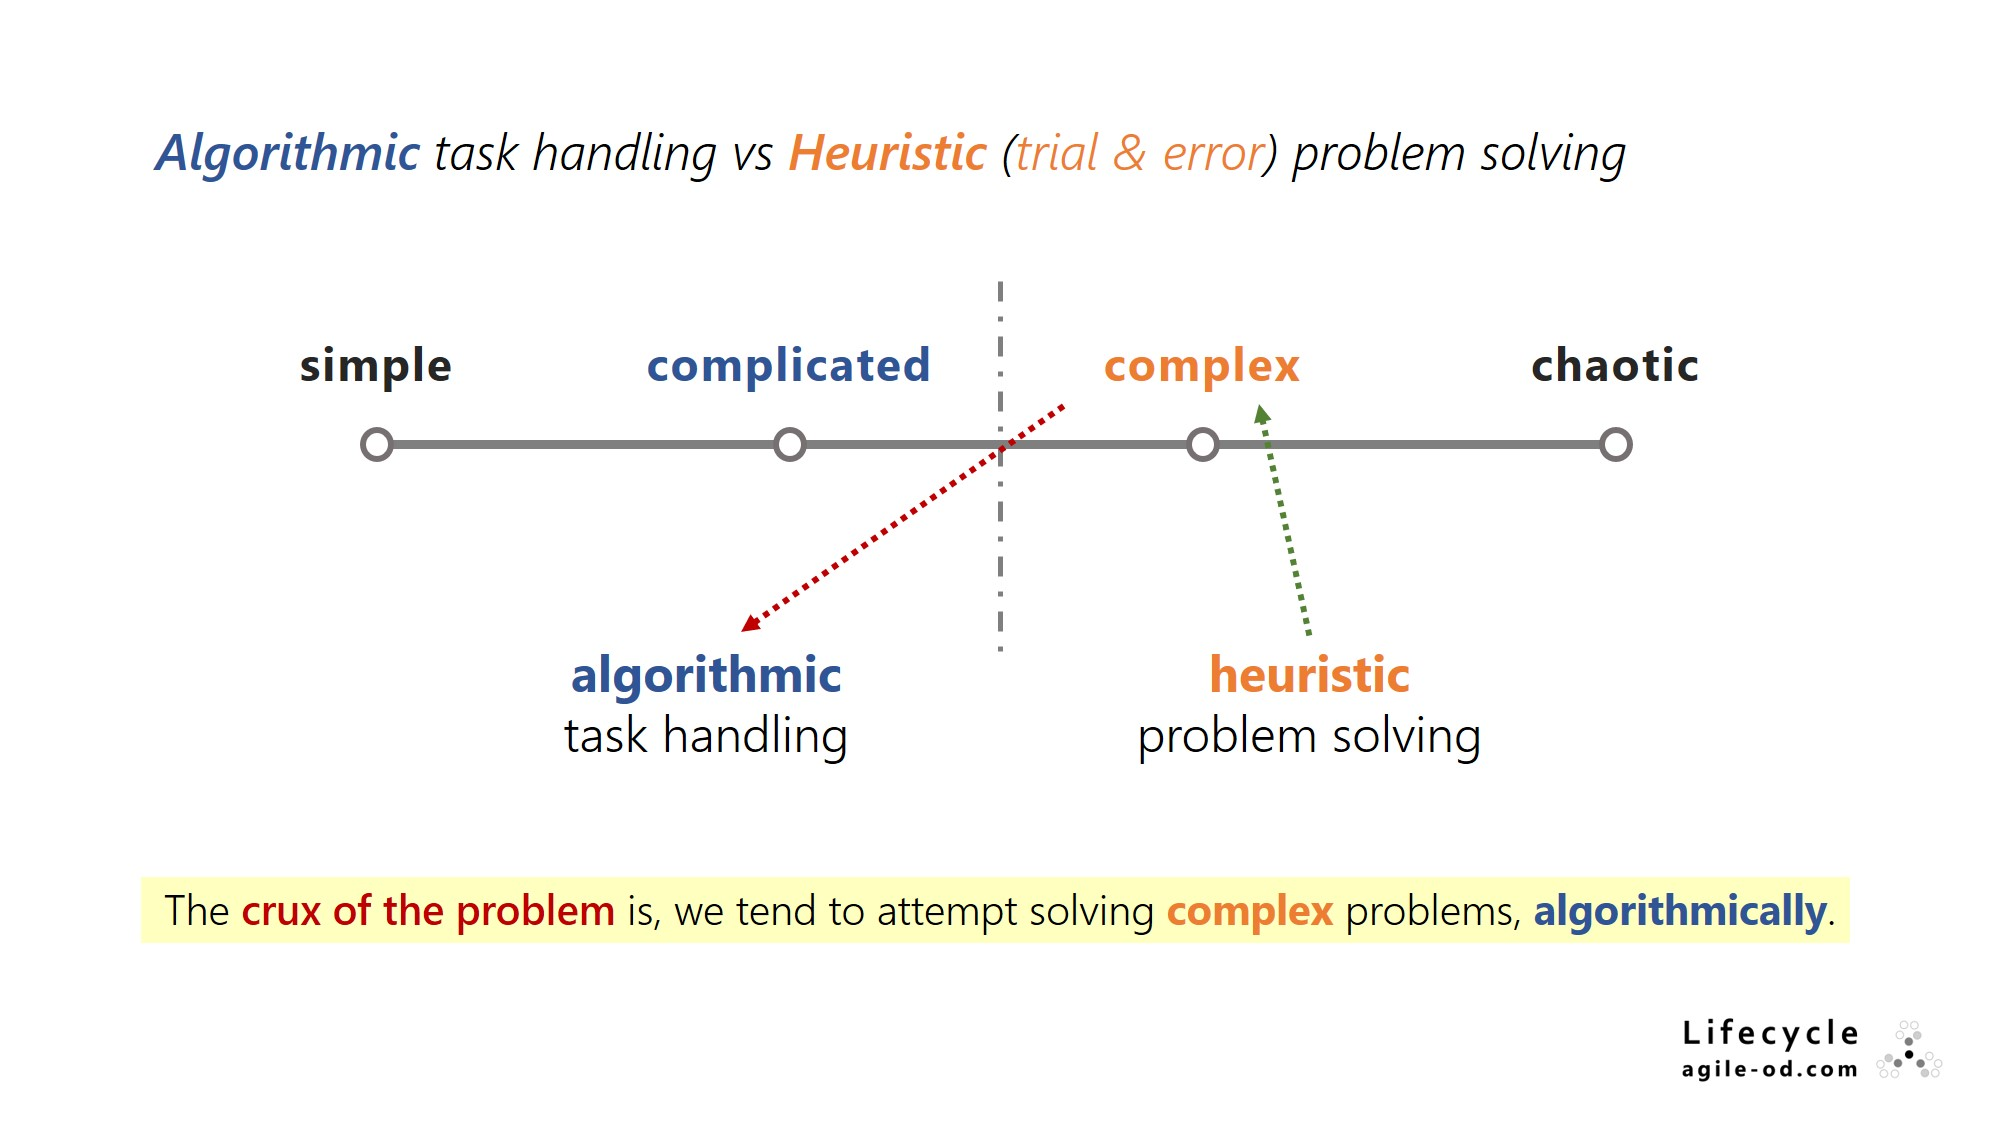 Solving complex problems algorithmically